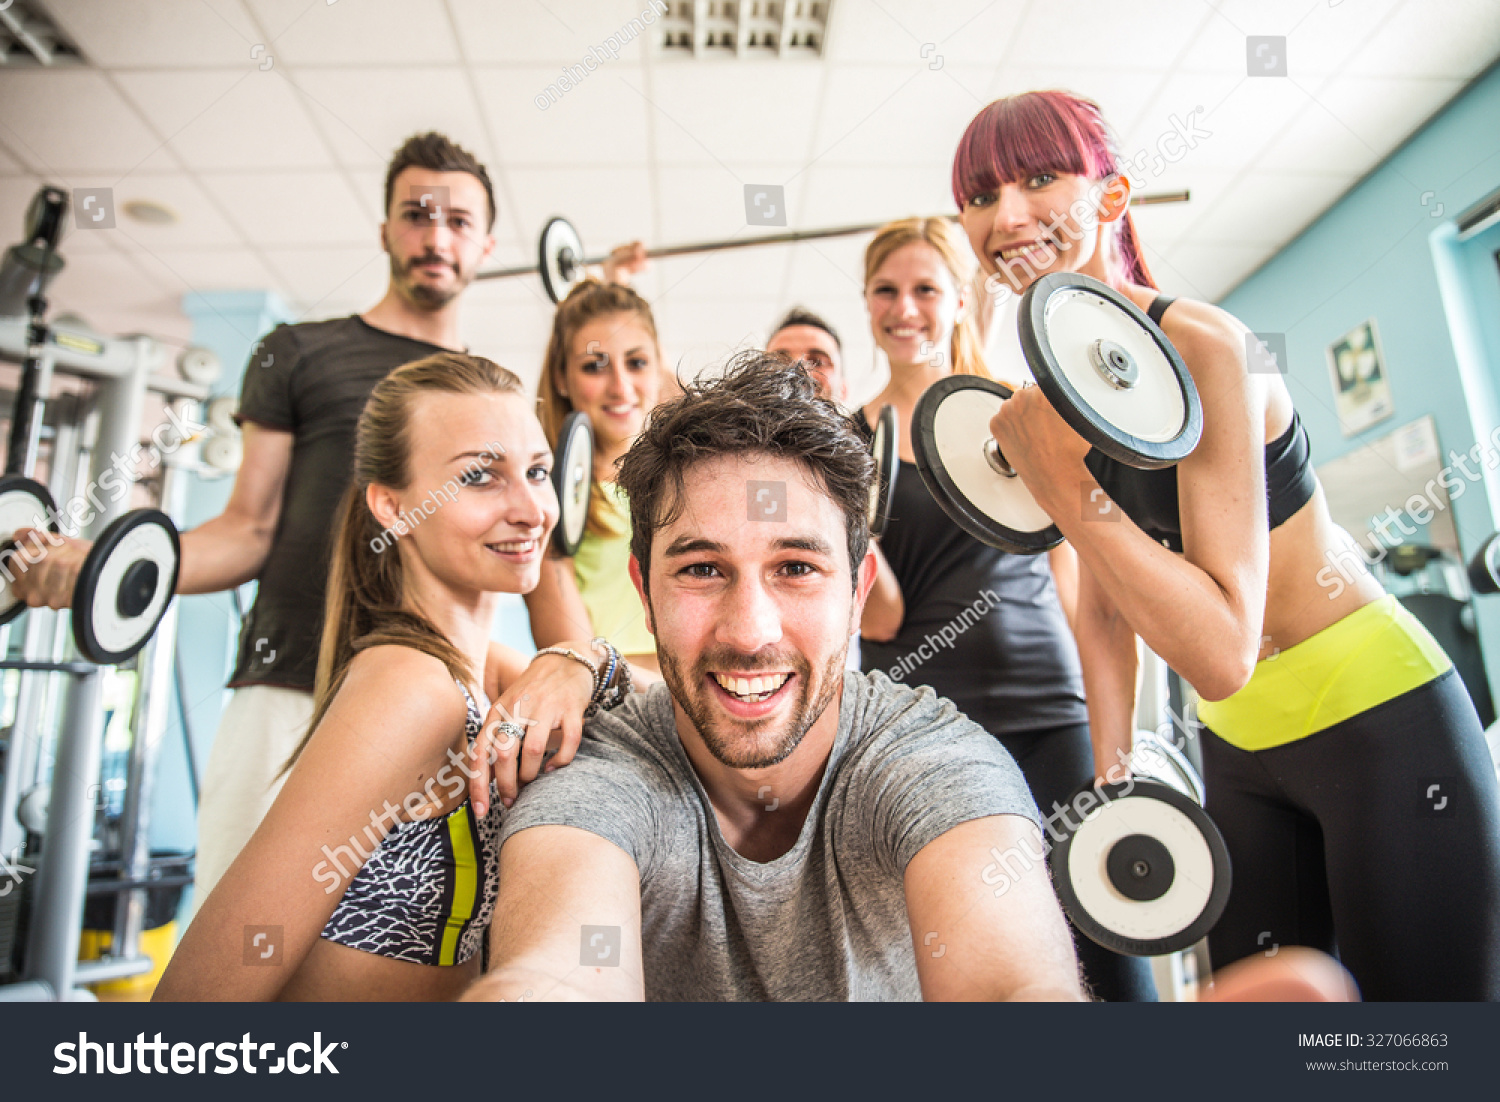 Group of sportive people in a gym taking selfie happy